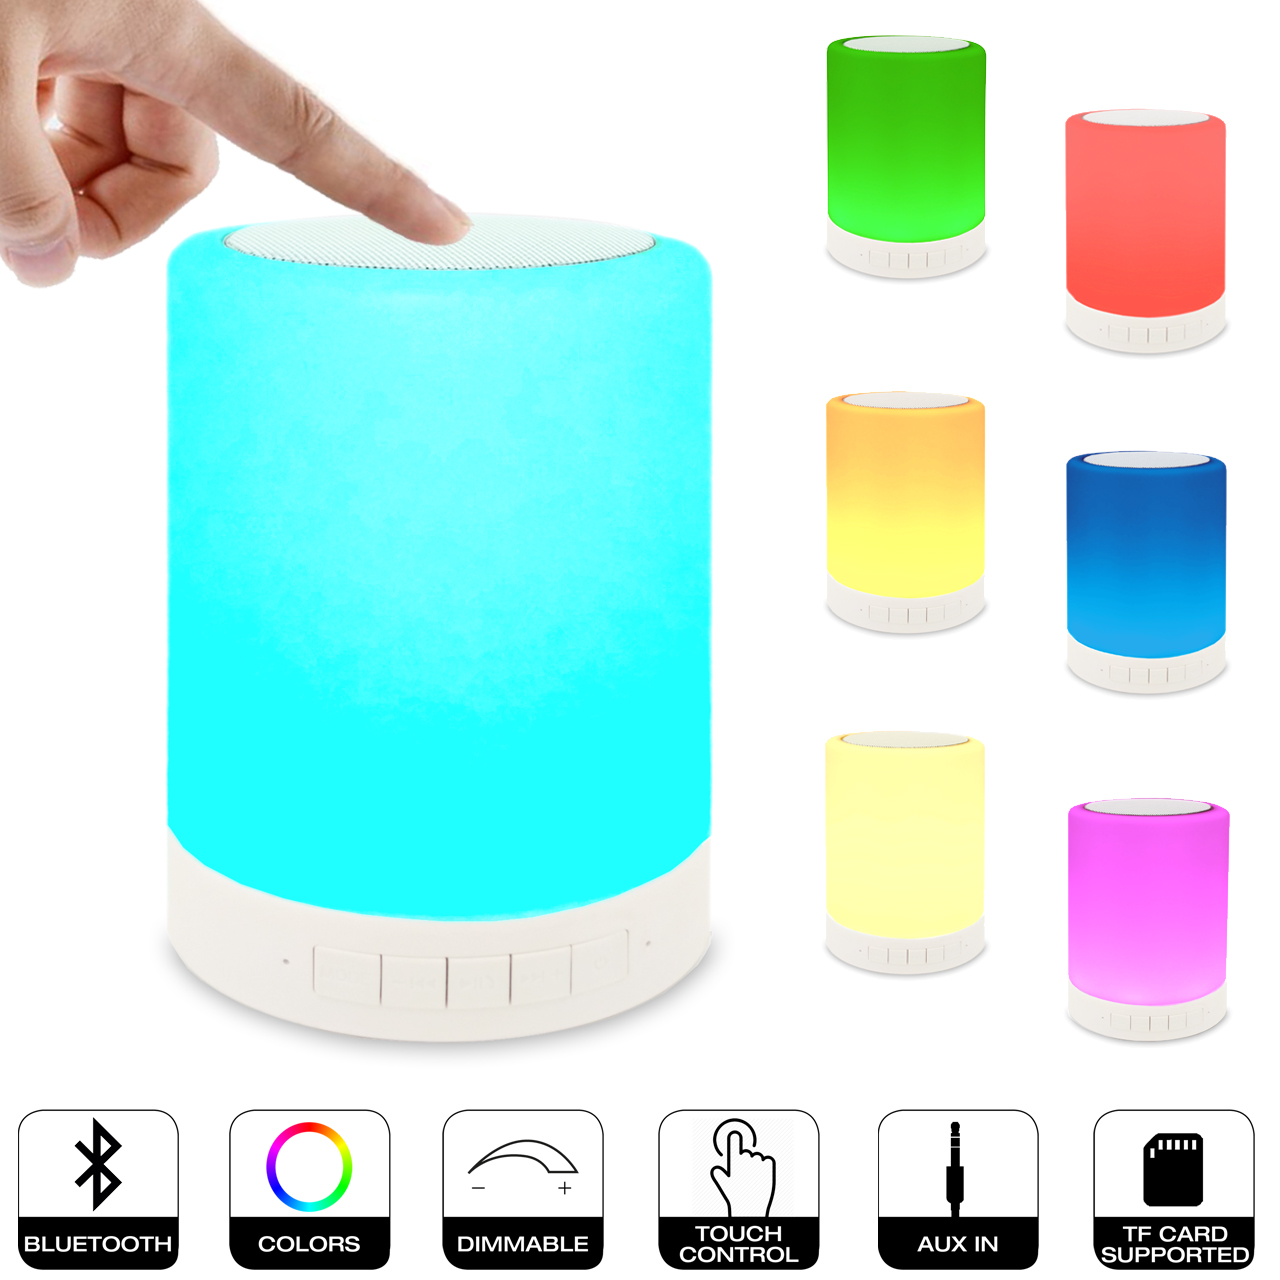 Zhoppy 2 In 1 Portable Bluetooth Speaker And Color Night